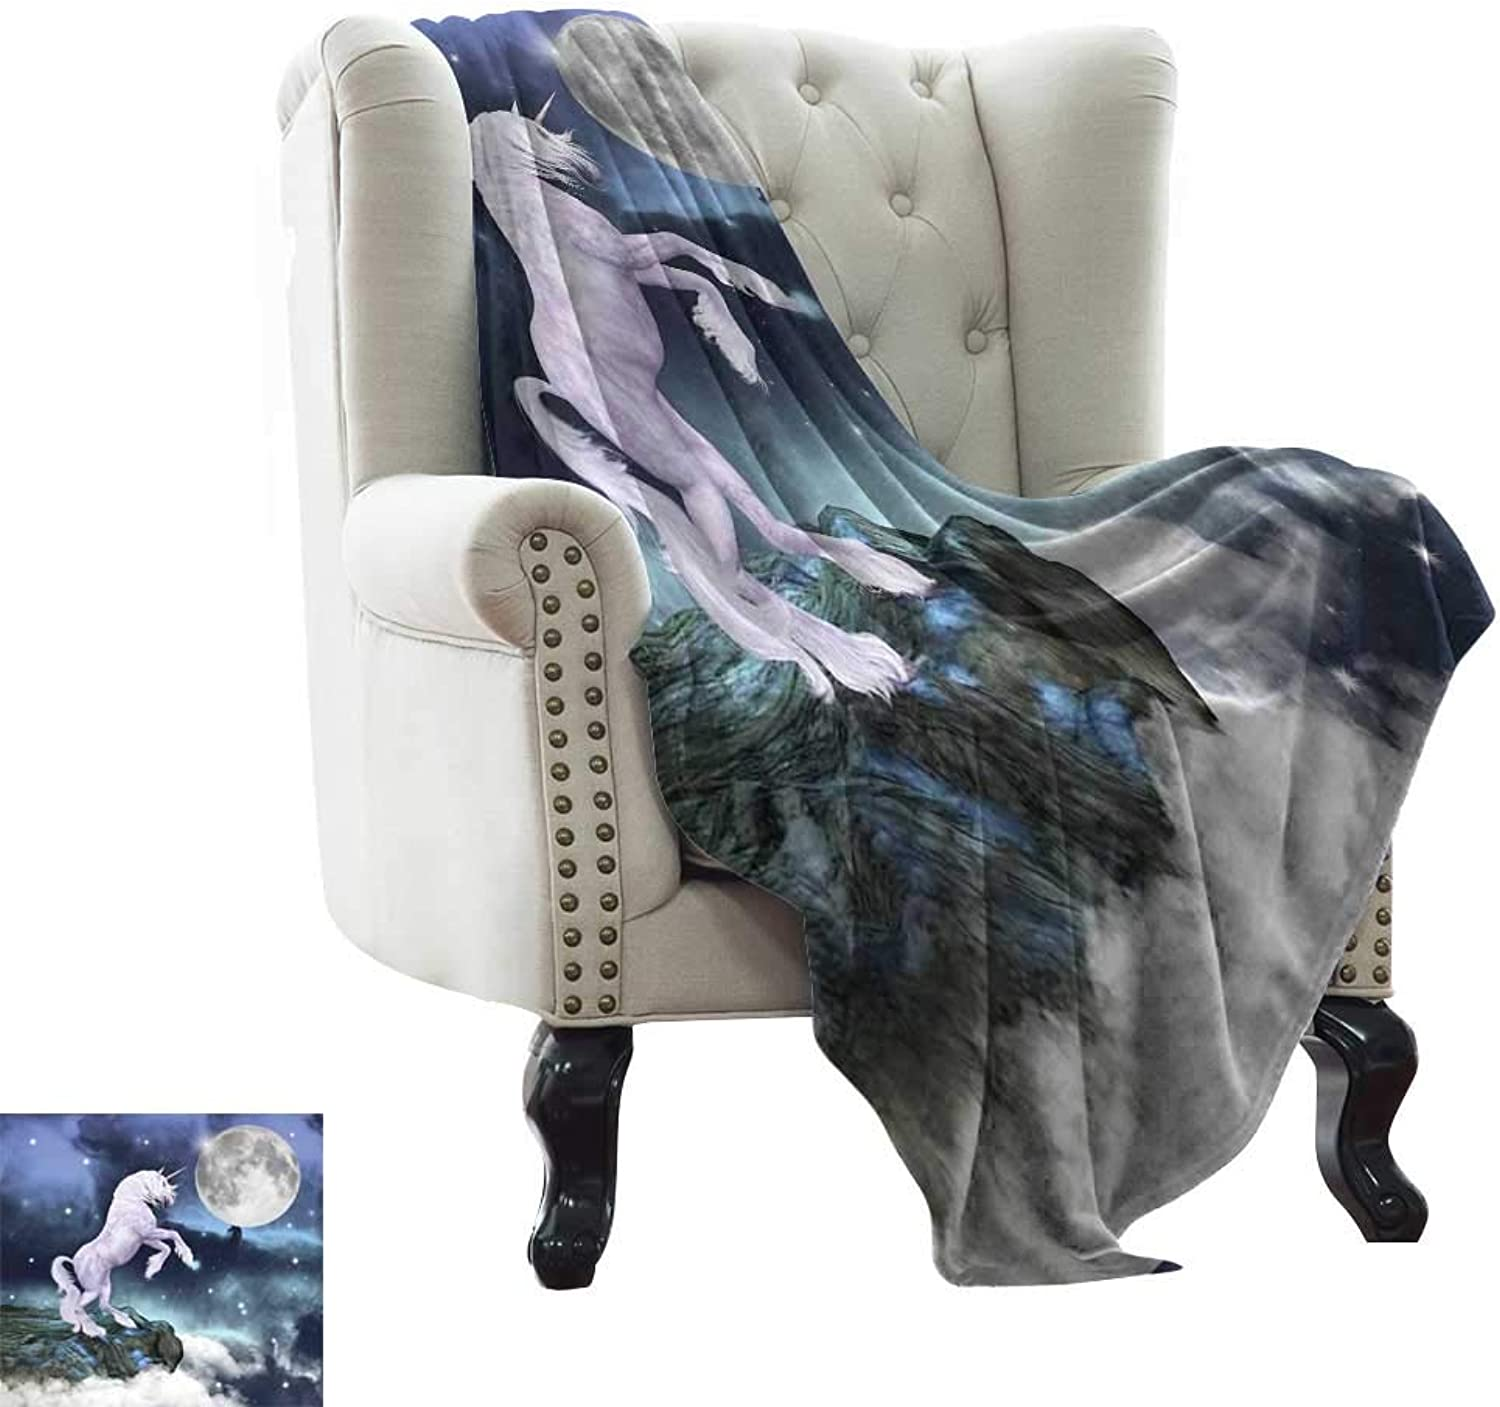 Baby Blanket Yarn Unicorn,Legendary Creature Up Cliffs Rocks in Full Moonlight Sky Fantasy Design Artprint,purplec bluee Weighted Blanket for Adults Kids, Better Deeper Sleep 35 x60